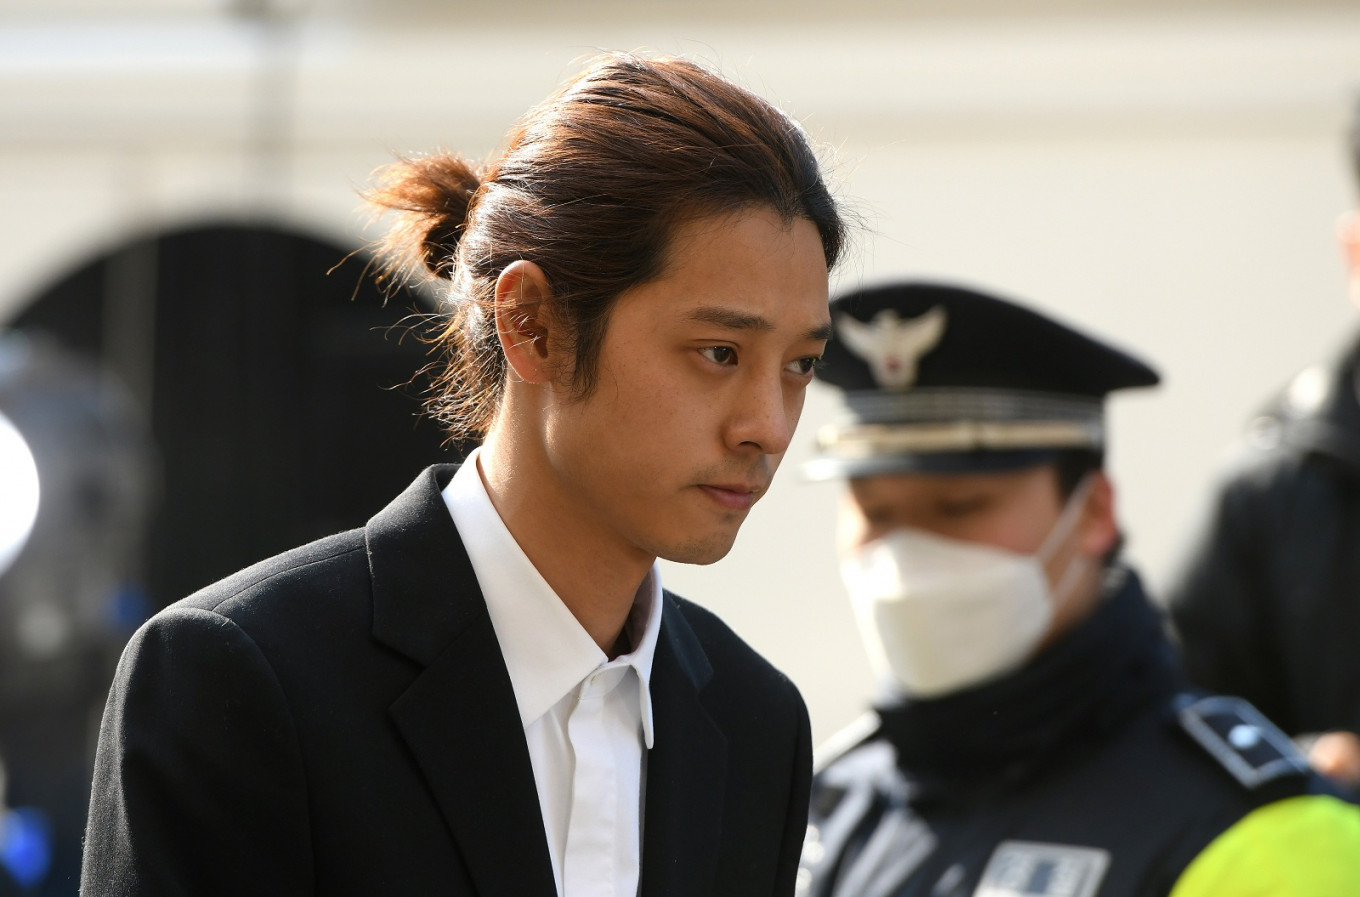 K-pop star Jung Joon-young (C) arrives for questioning in Seoul